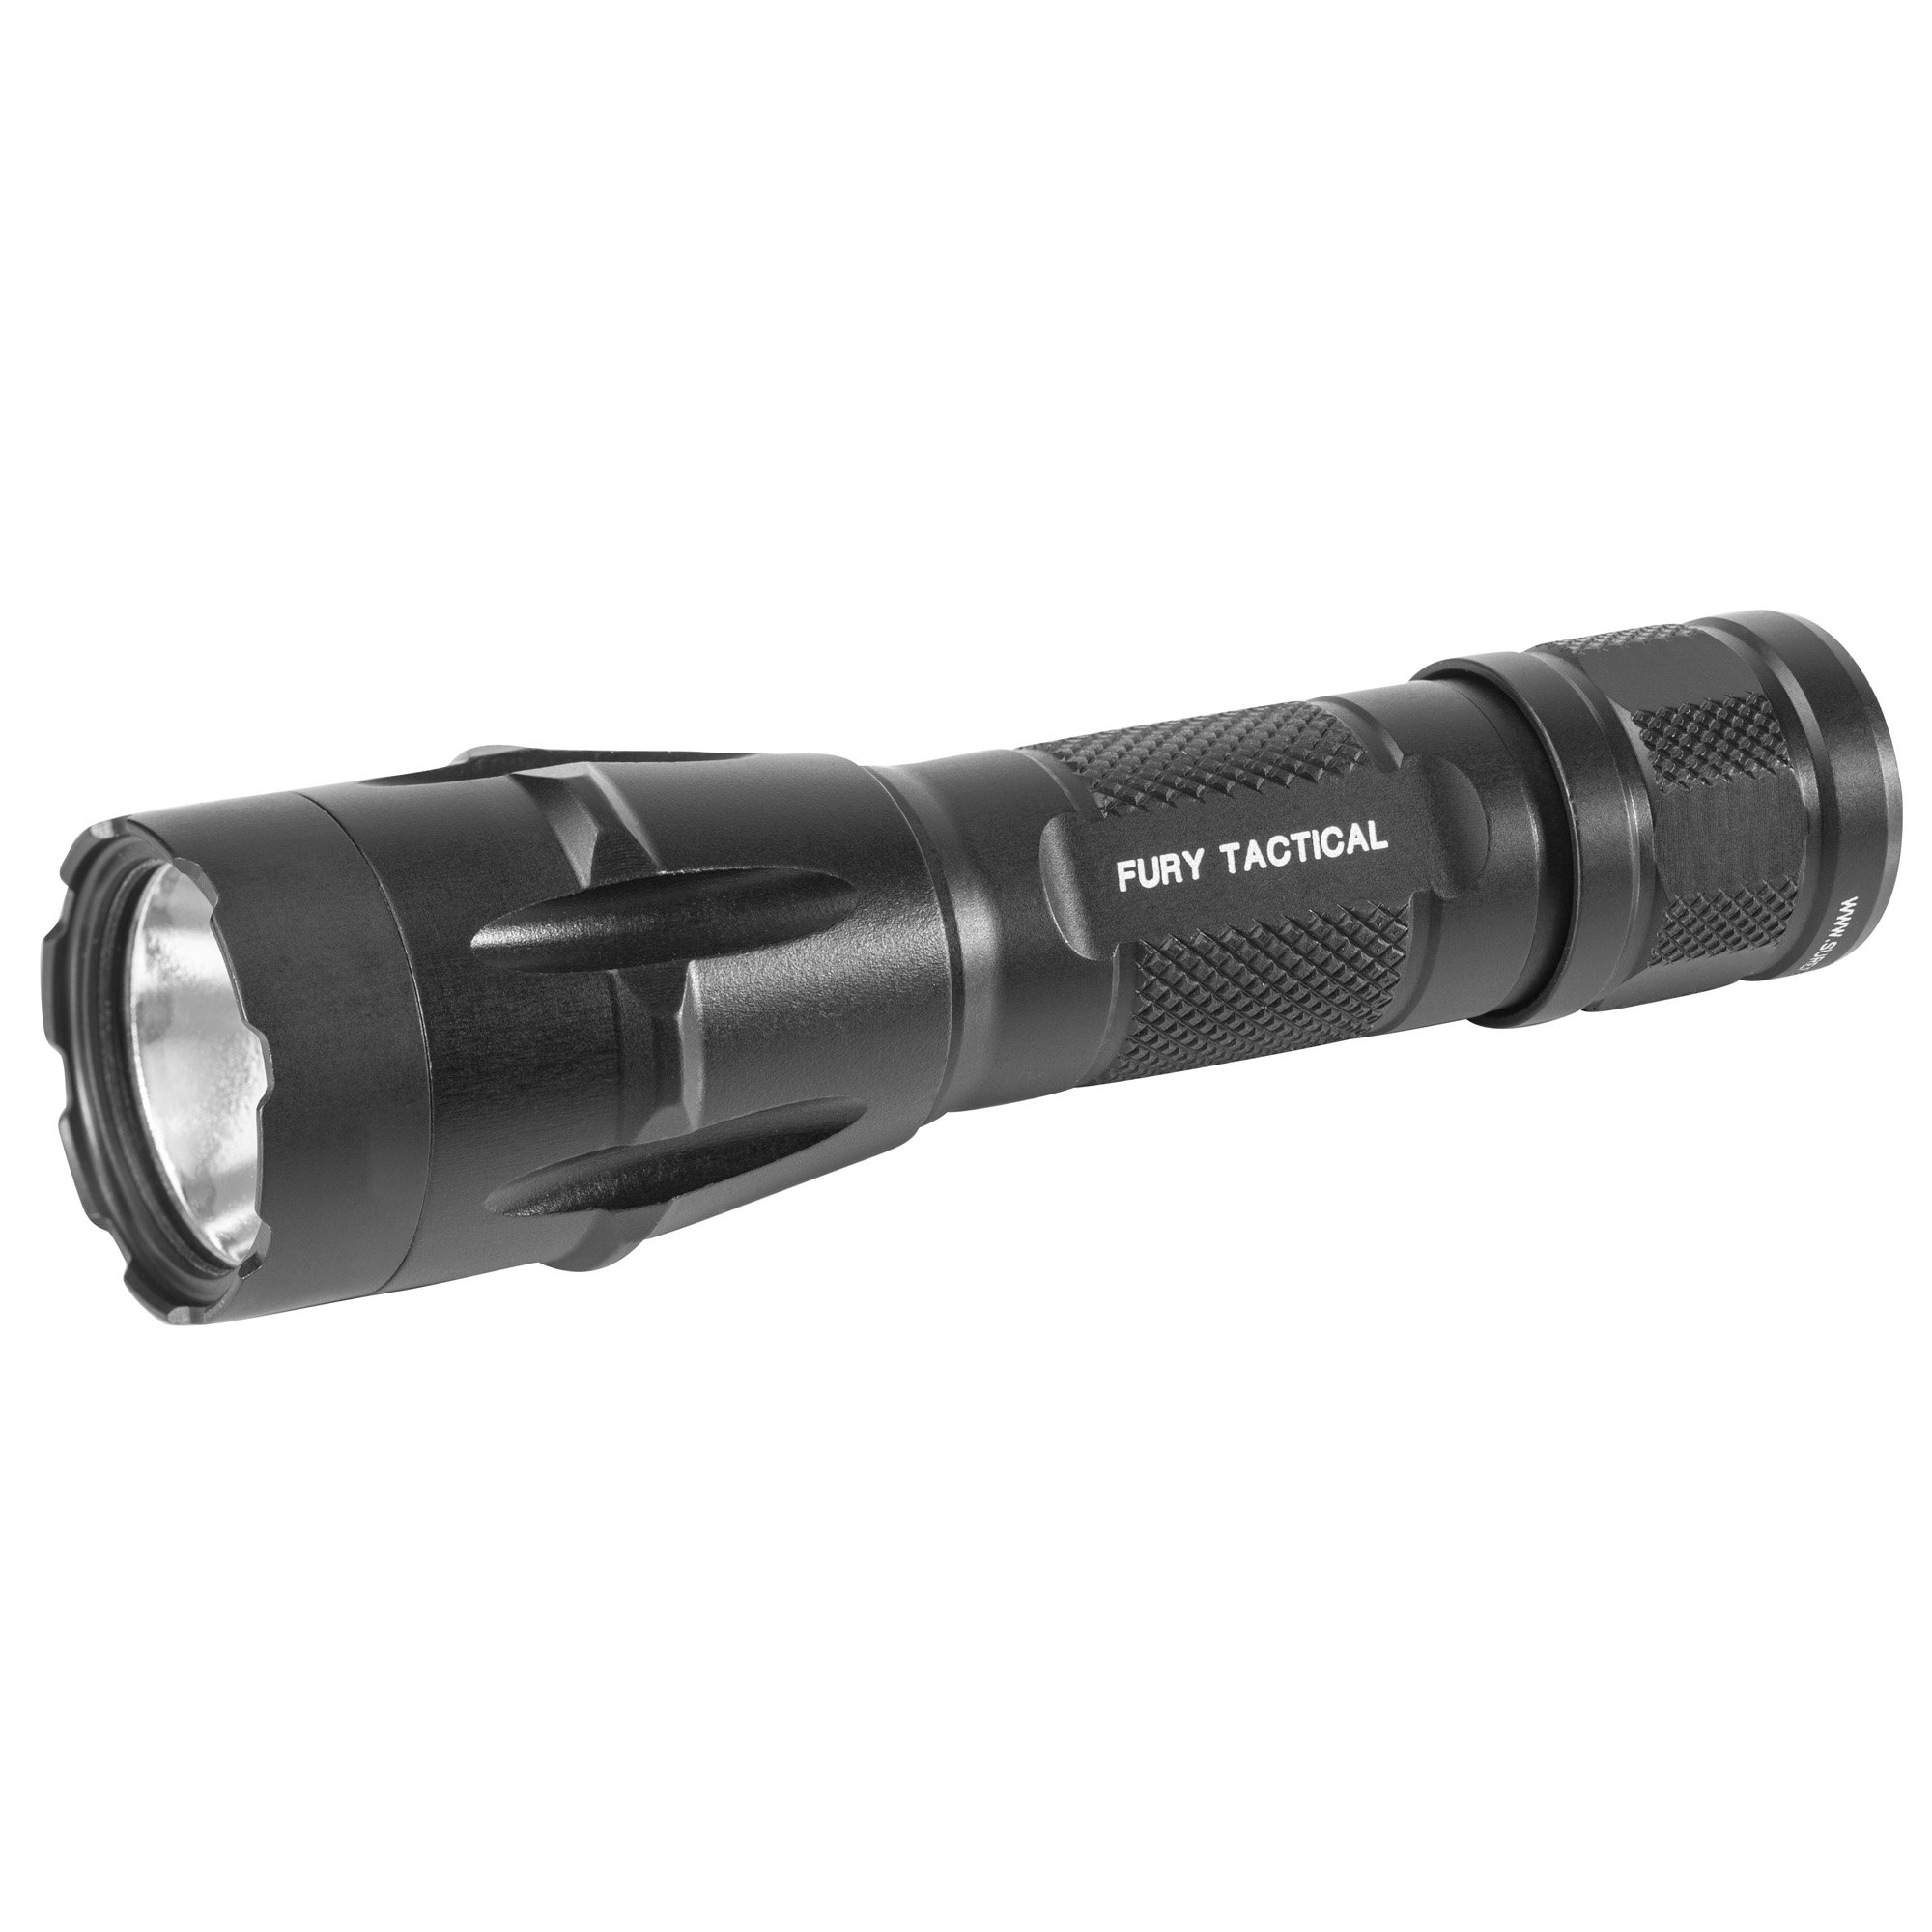 Camping-Taschenlampen SureFire Fury Dual-Fuel Tactical LED Flashlight